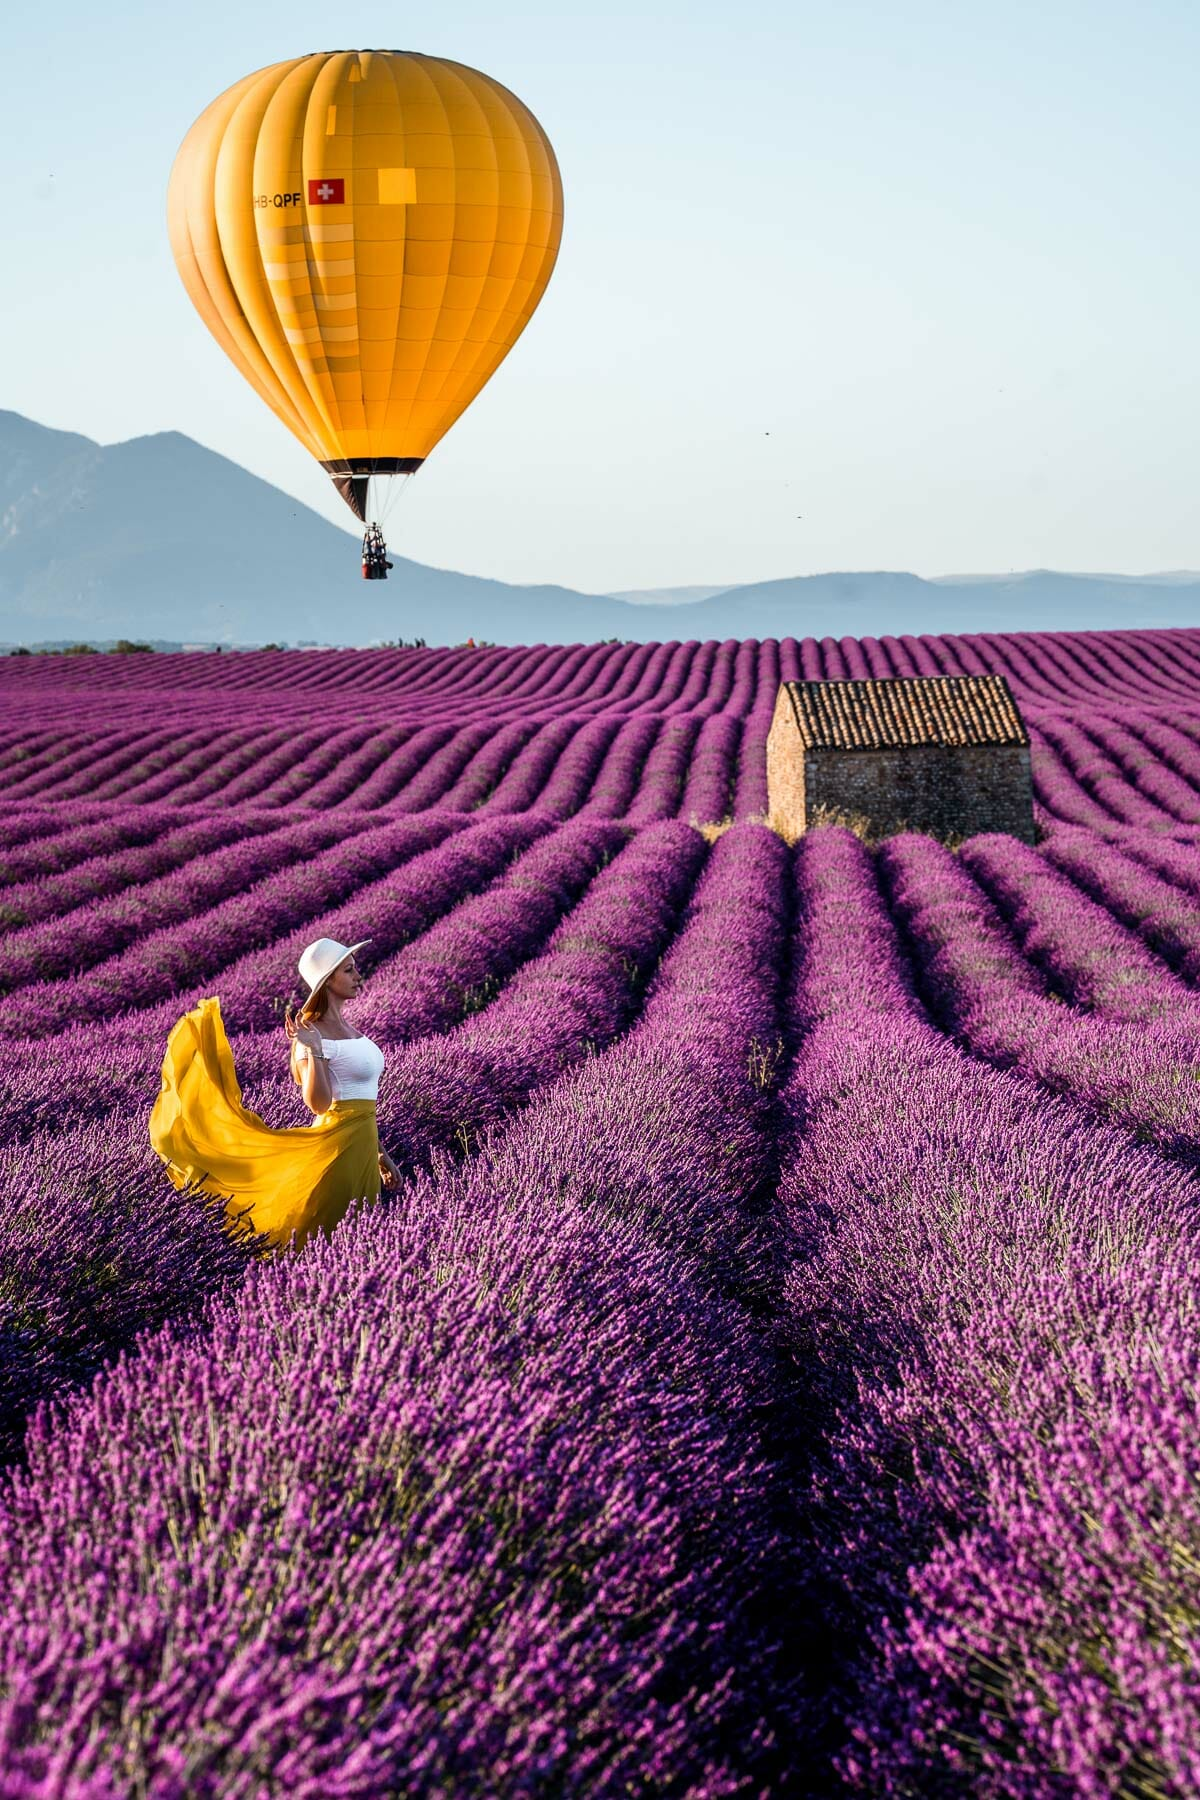 Hot air balloons at the lavender fields in Provence, France